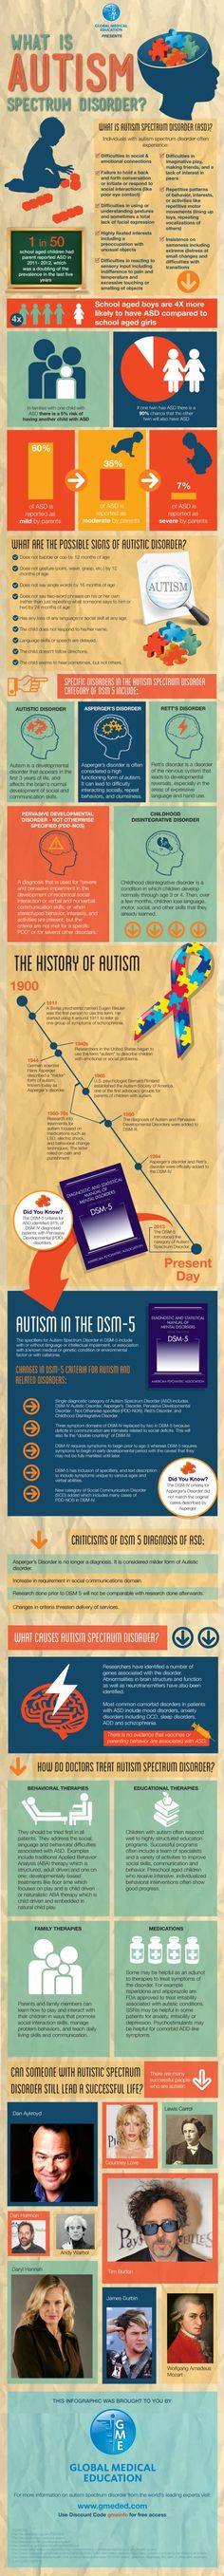 What Is Autism? - Blog About Infographics and Data Visualization - Cool Infographics